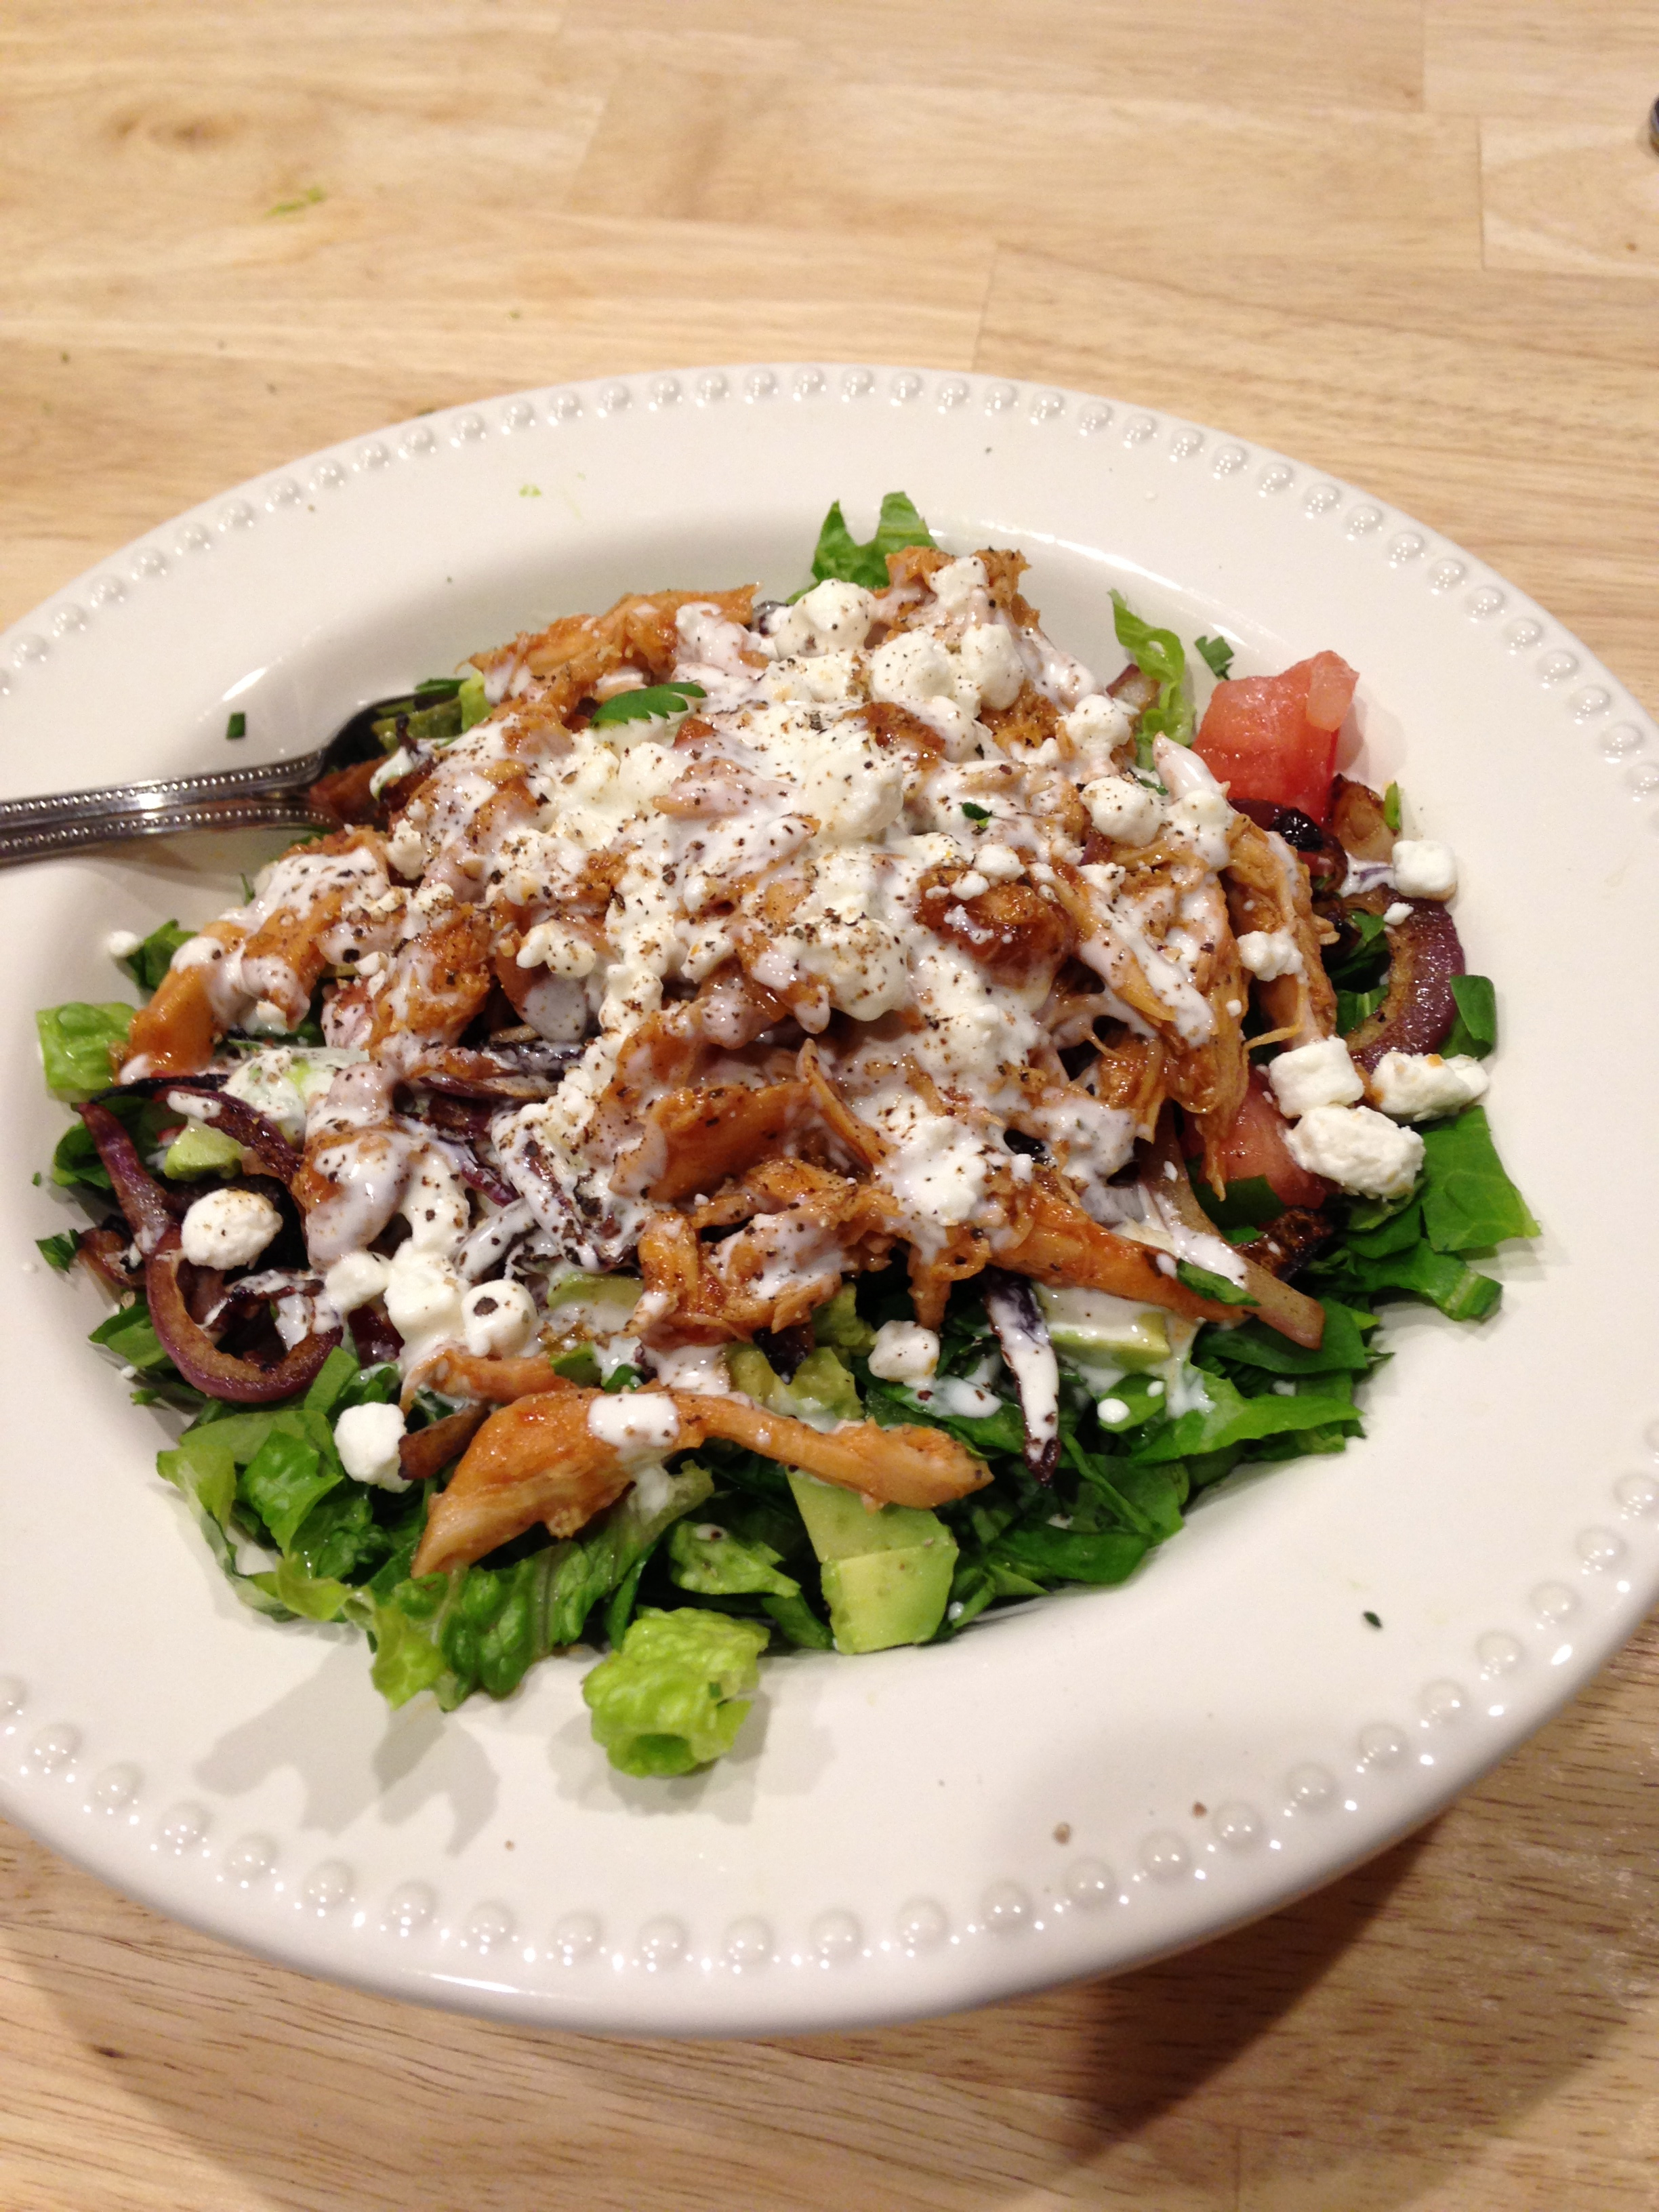 Clean Eating Gluten Free Meal Ideas And My Food Rules Sevenlayercharlotte